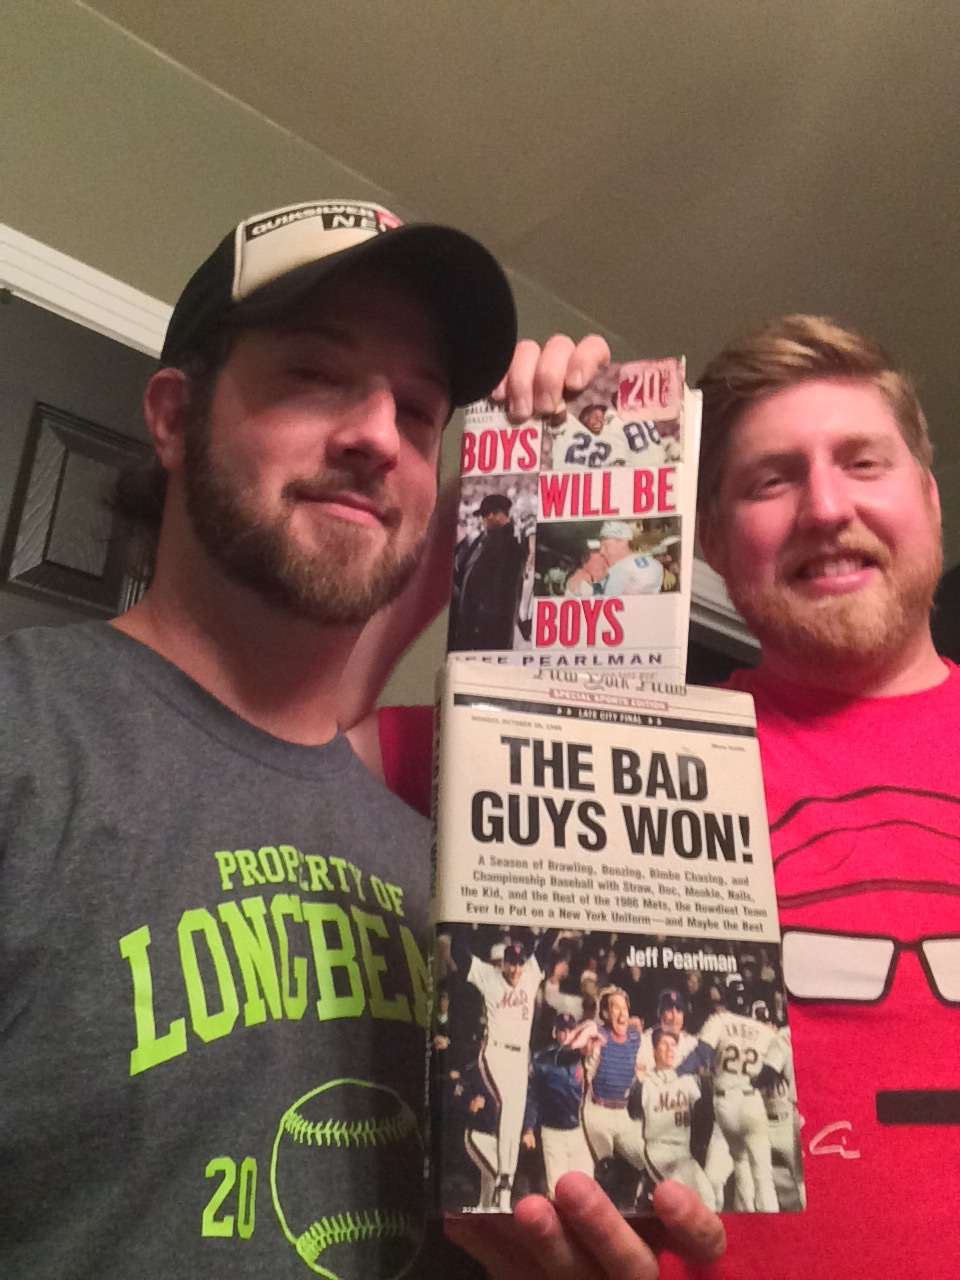 Drew & DaveWalk It Off!Sundays, 11 PM – 12 AMBoys Will Be Boys / The Bad Guys Won!Jeff PearlmanHarperCollins -